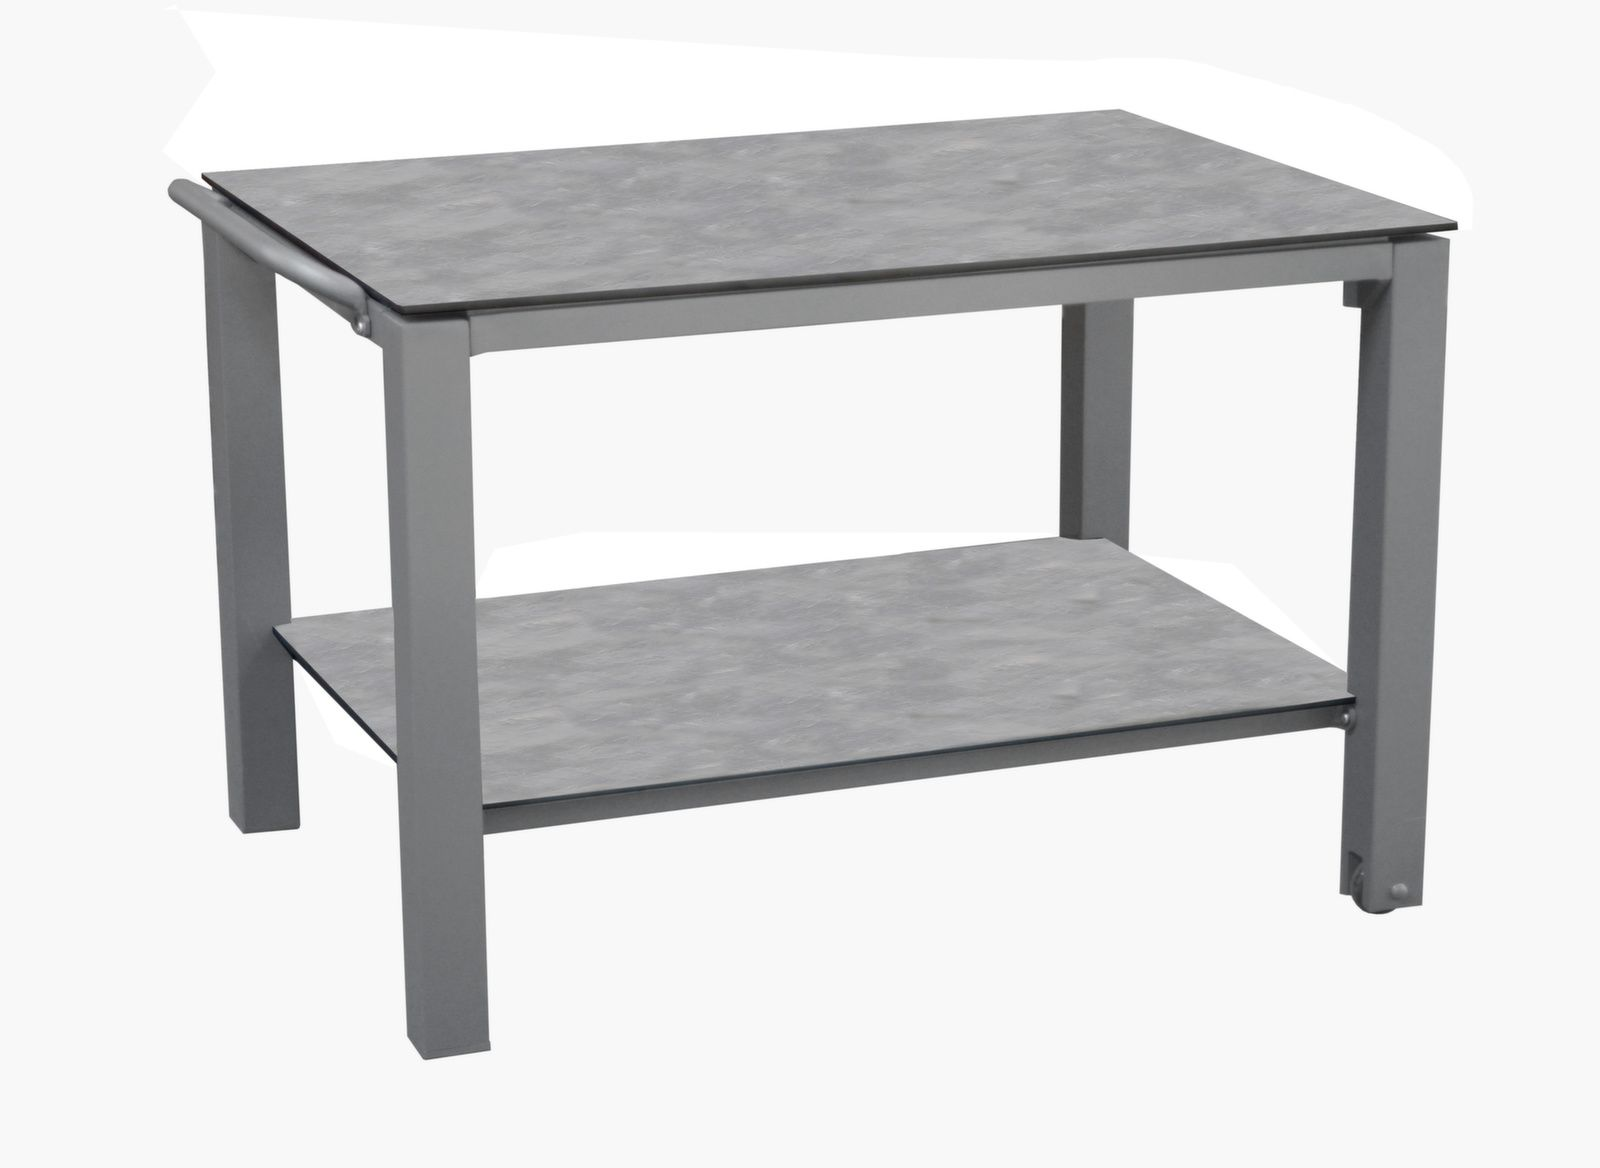 Table Plancha 100 x 70 cm, plateau Arpa